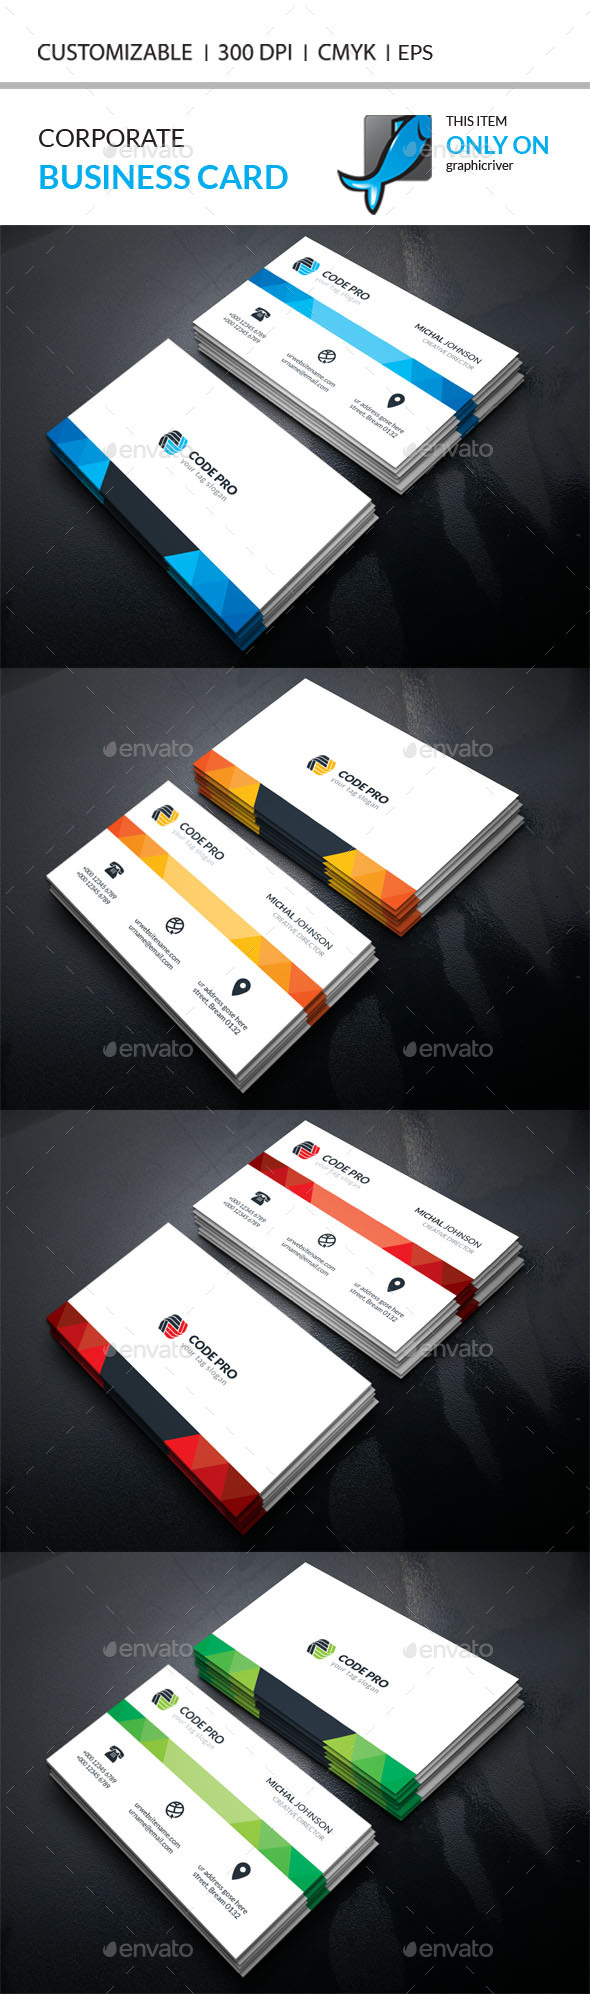 illustrator business card template - Paso.evolist.co